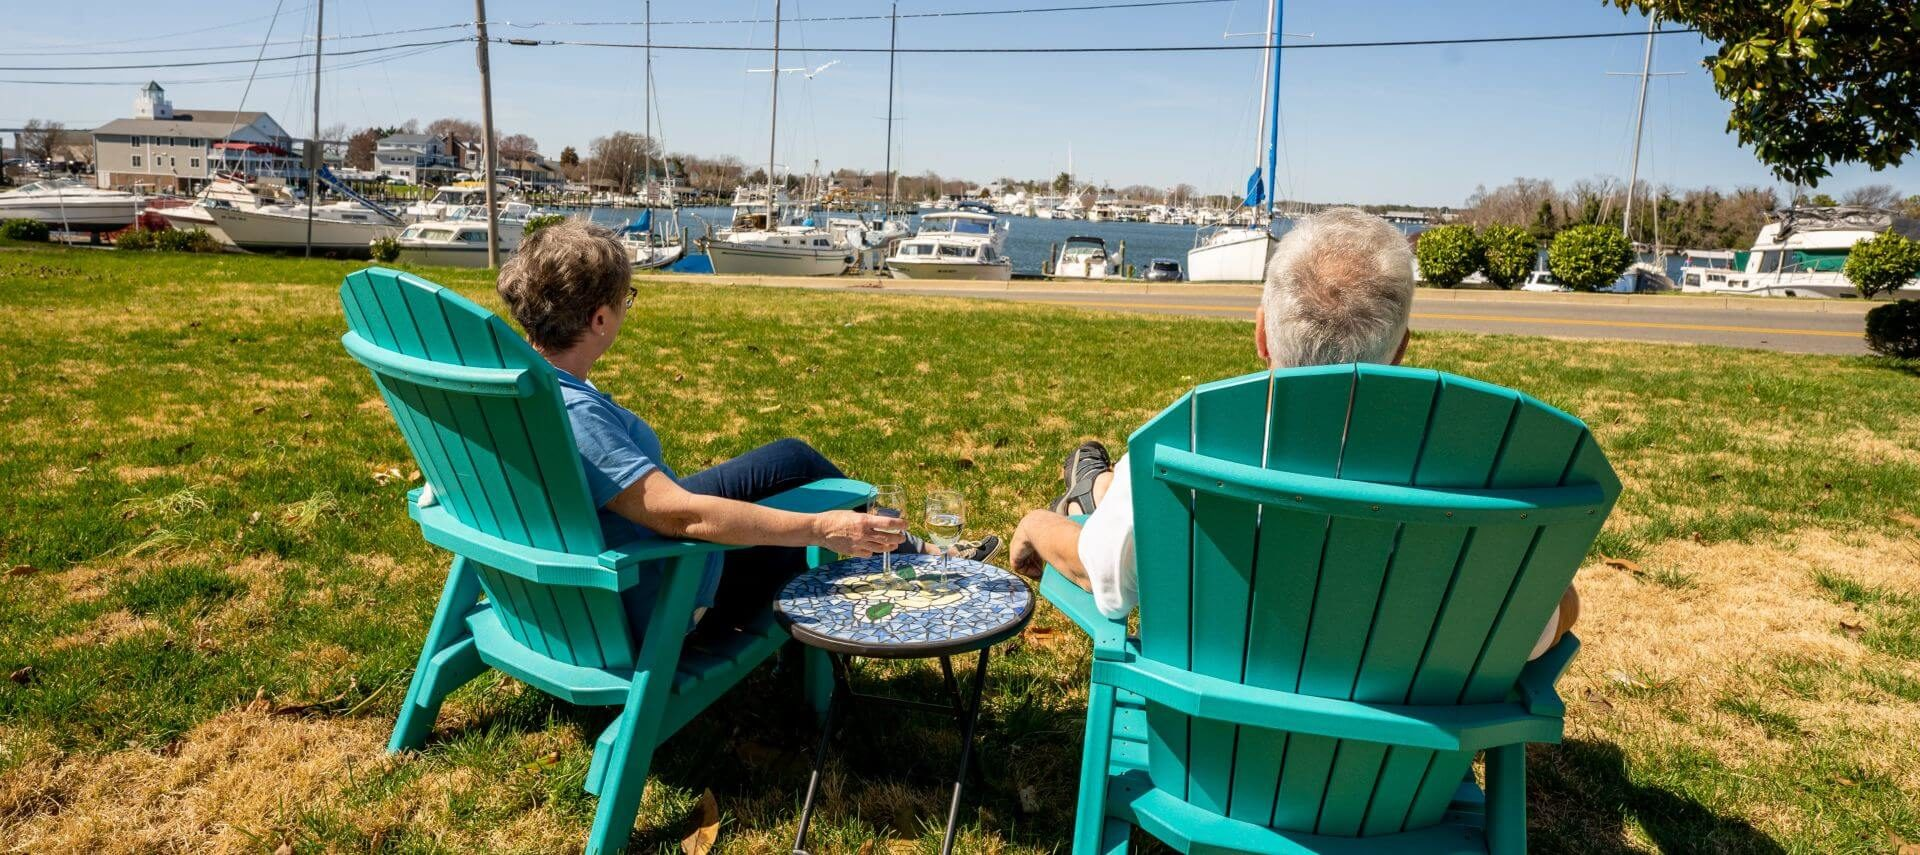 man and woman sitting in chairs looking at harbor